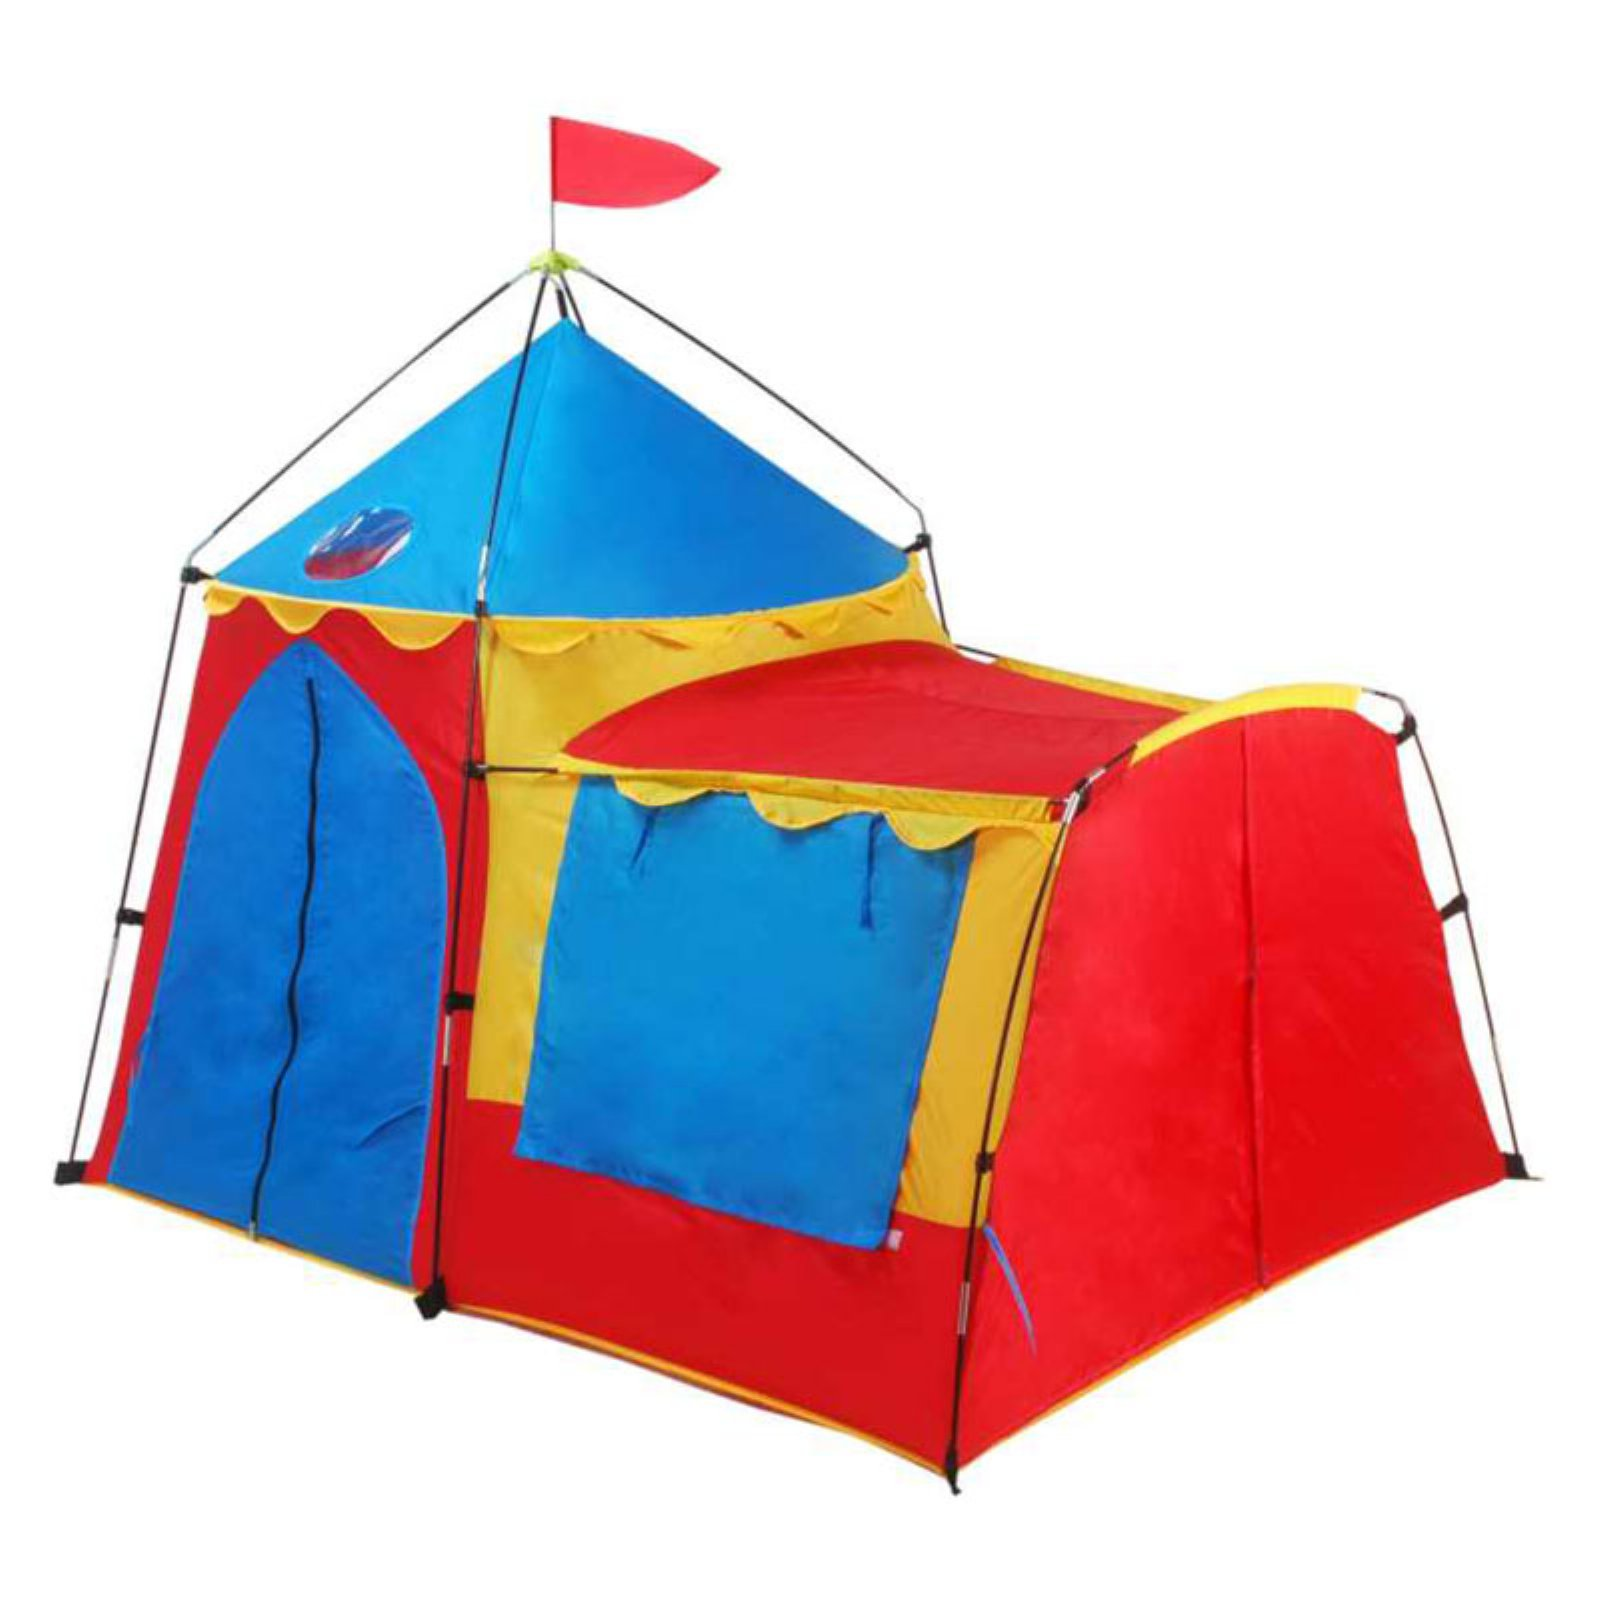 GigaTent Knight's Tower Play Tent